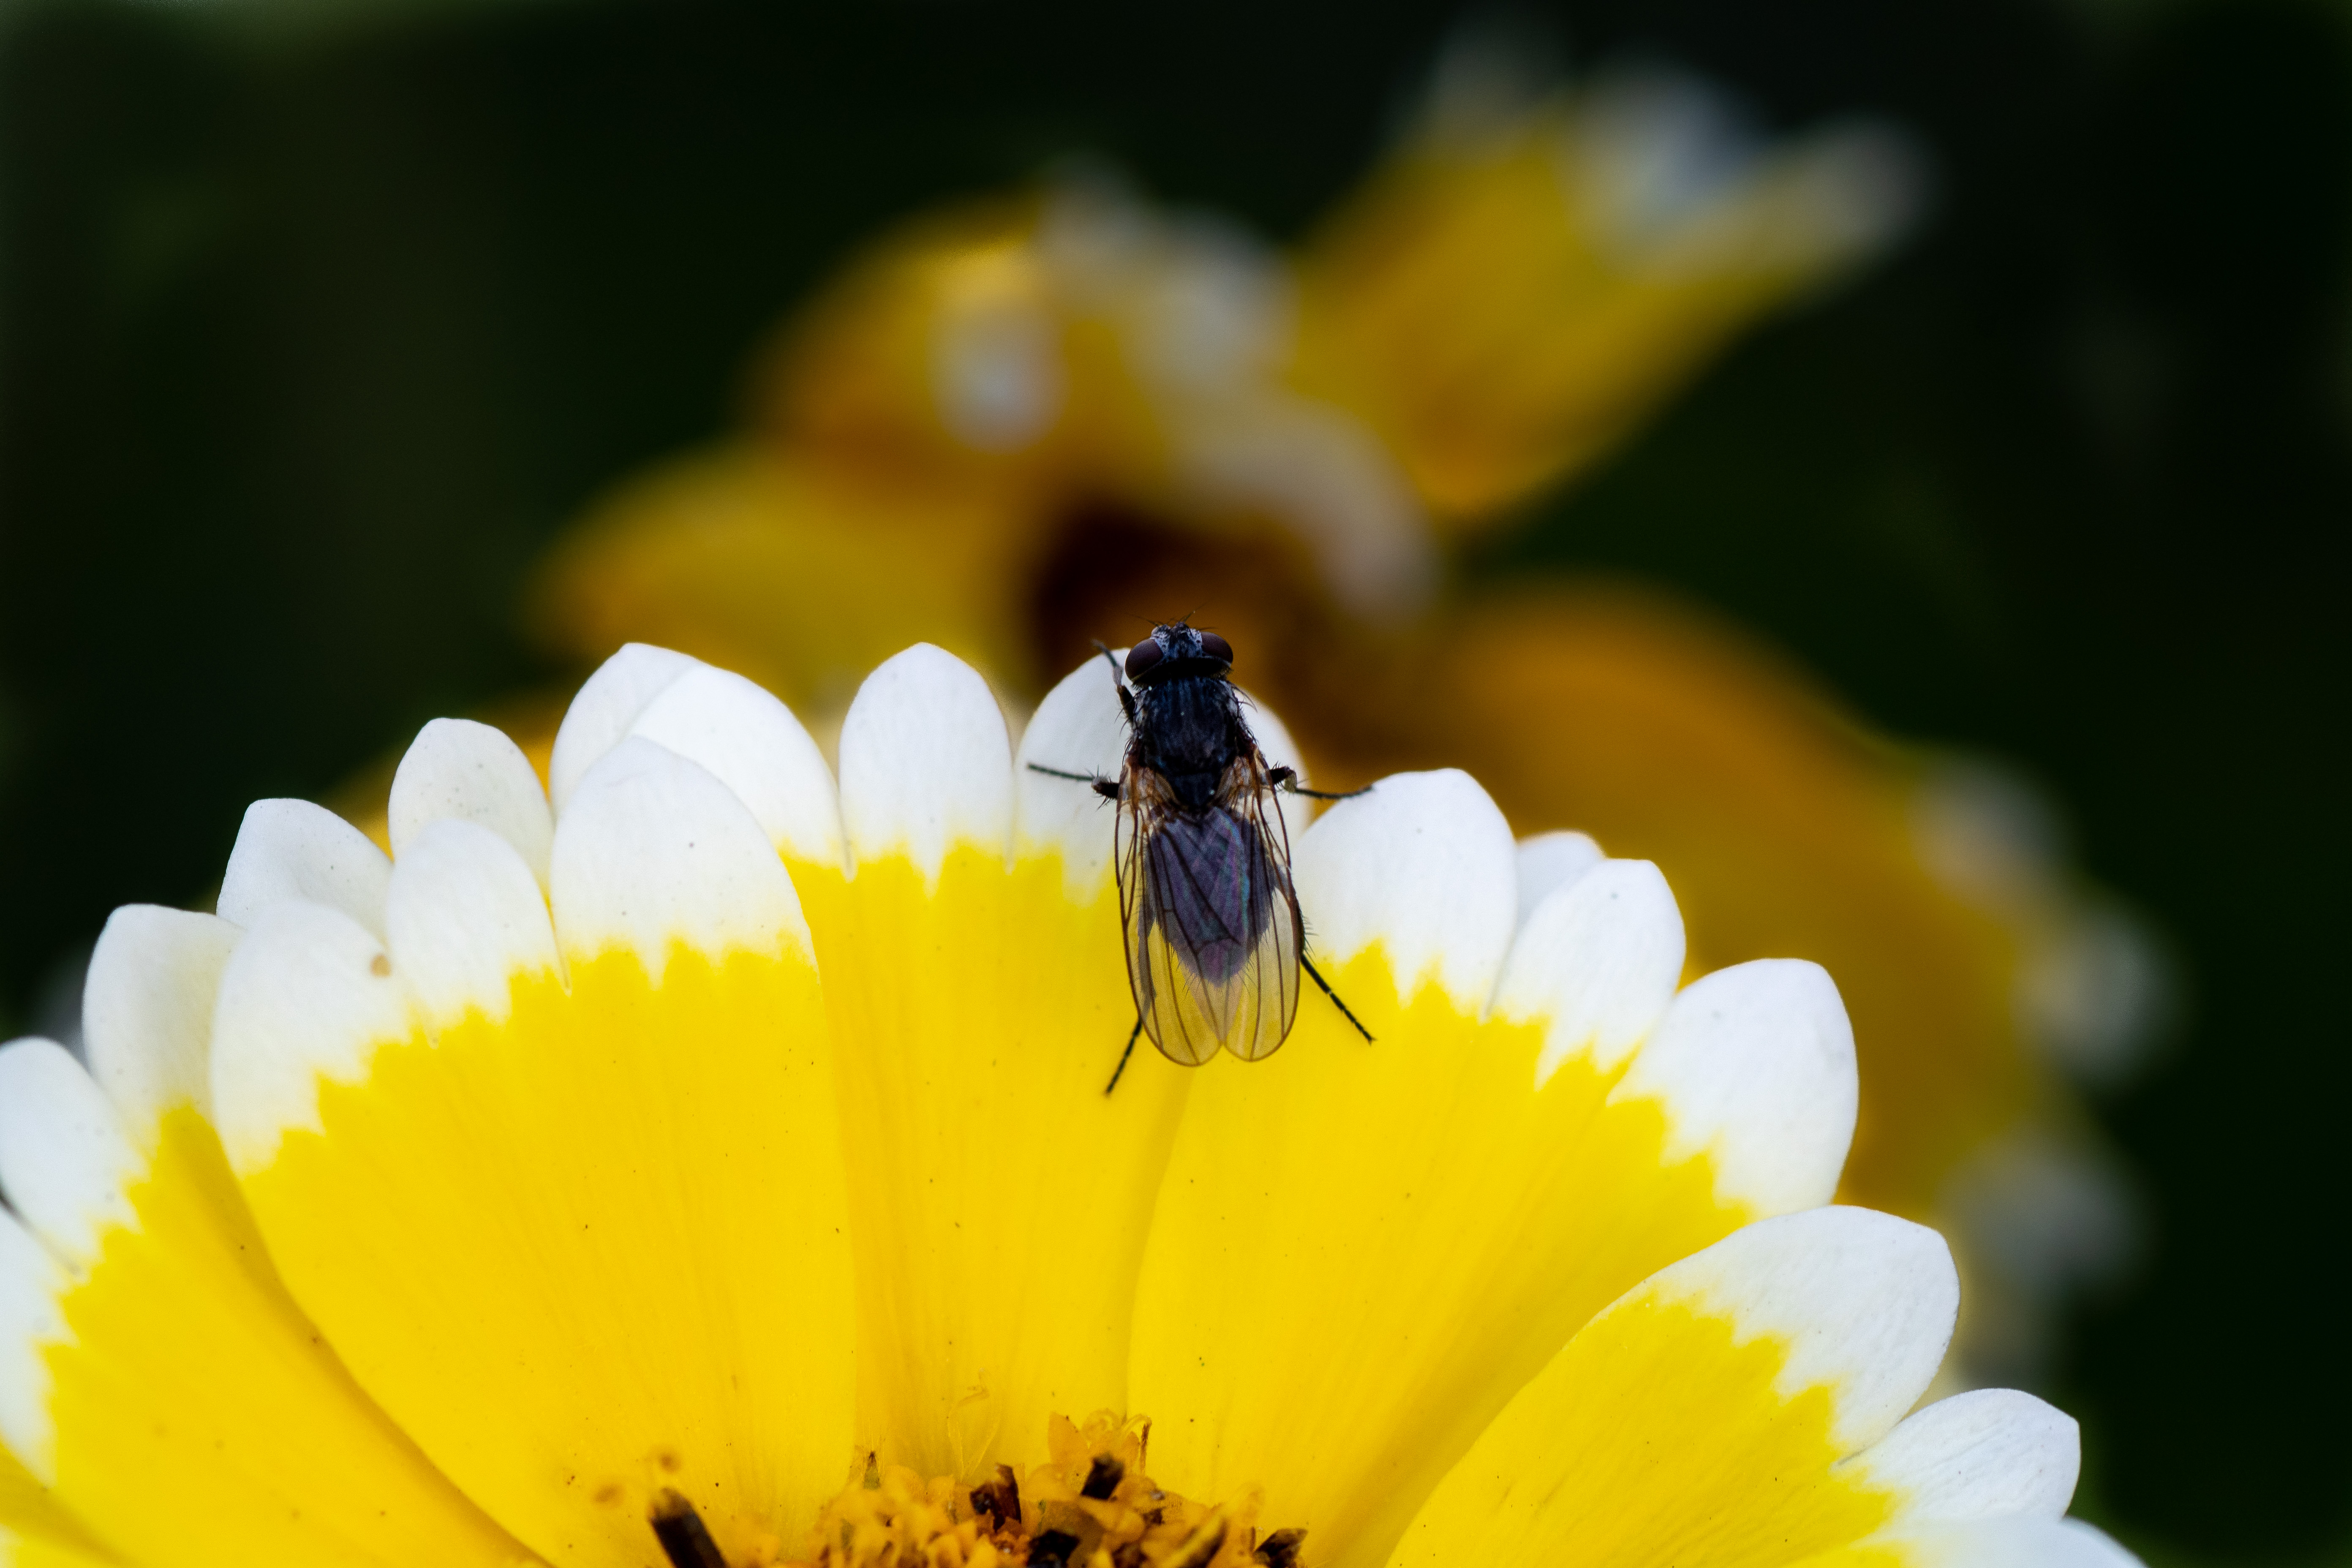 A fly on the edge of a yellow flower